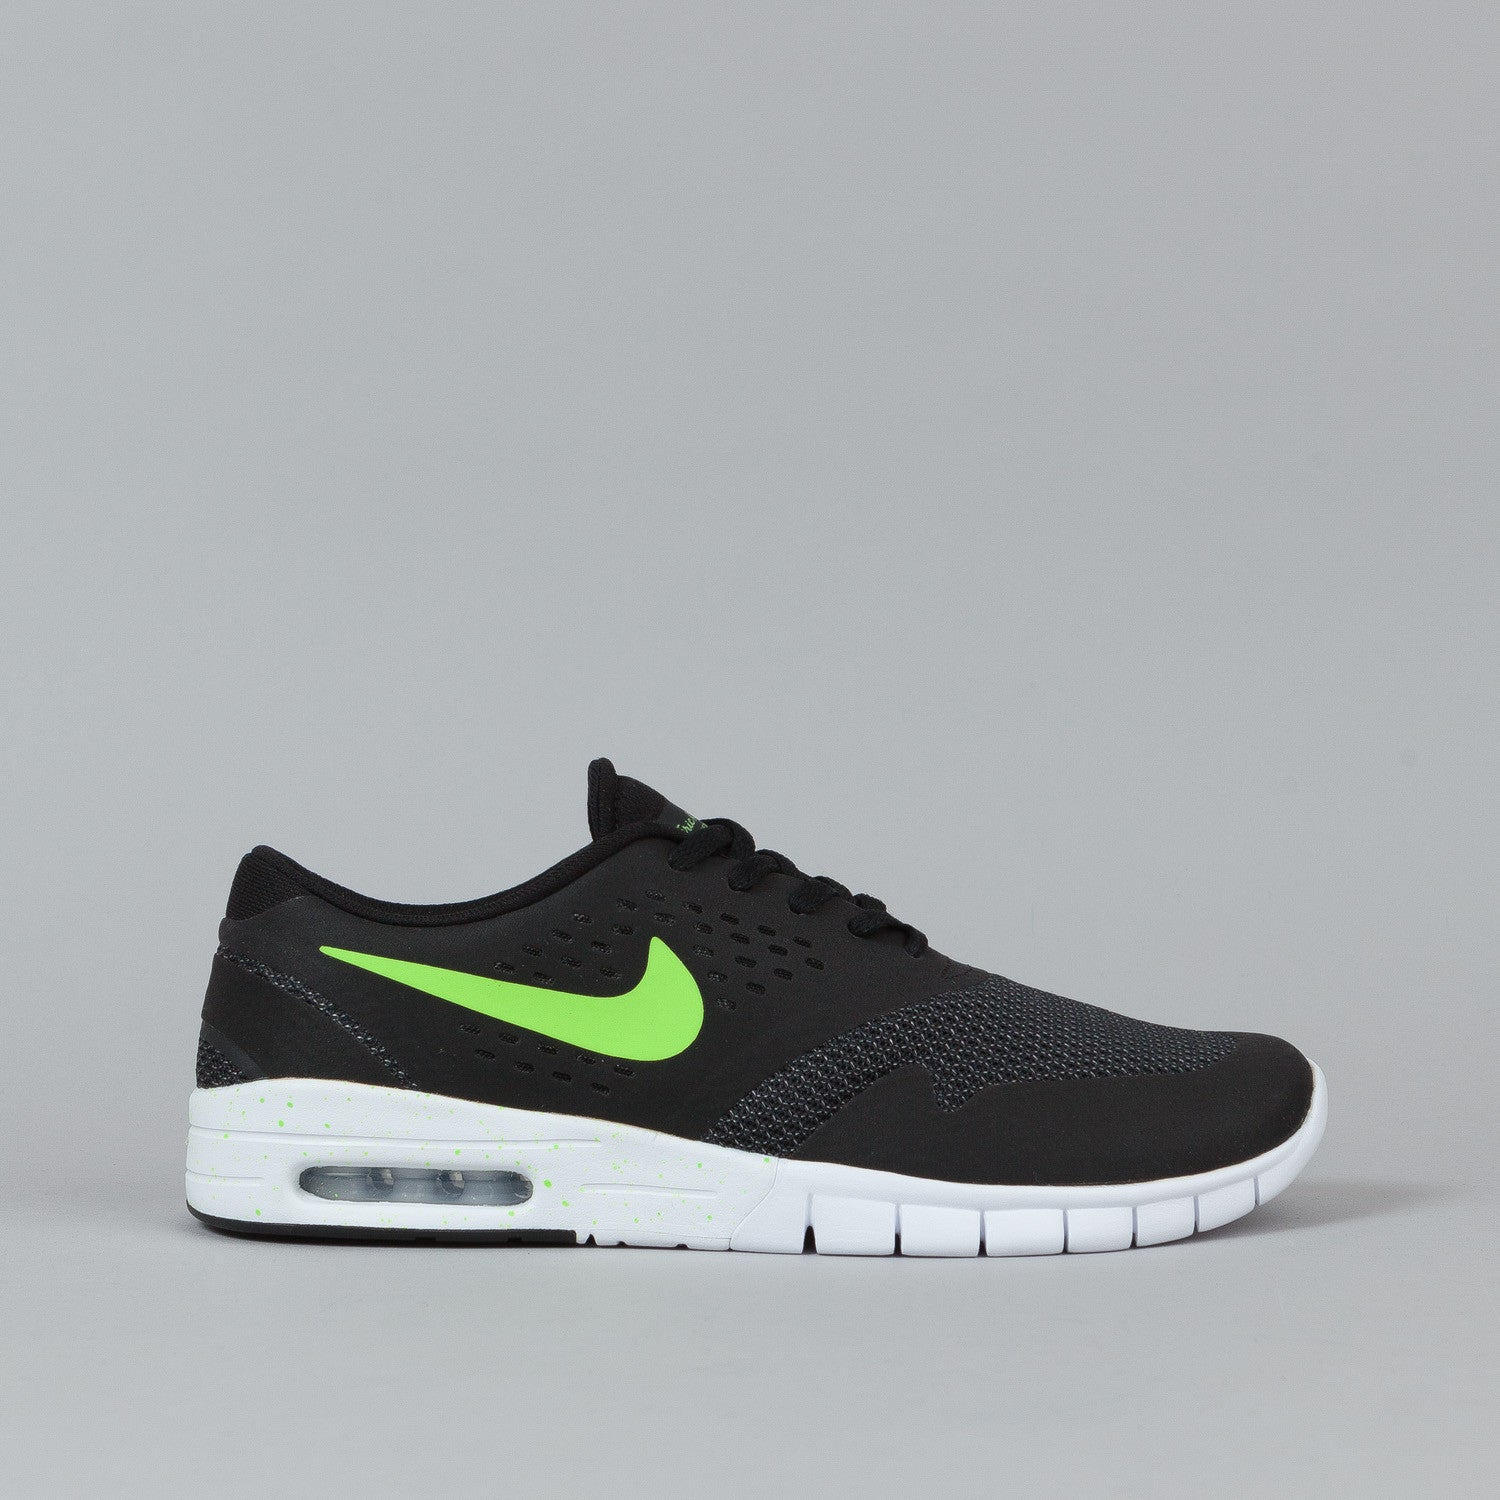 Nike SB Eric Koston 2 Max Shoes Black / Flash Lime